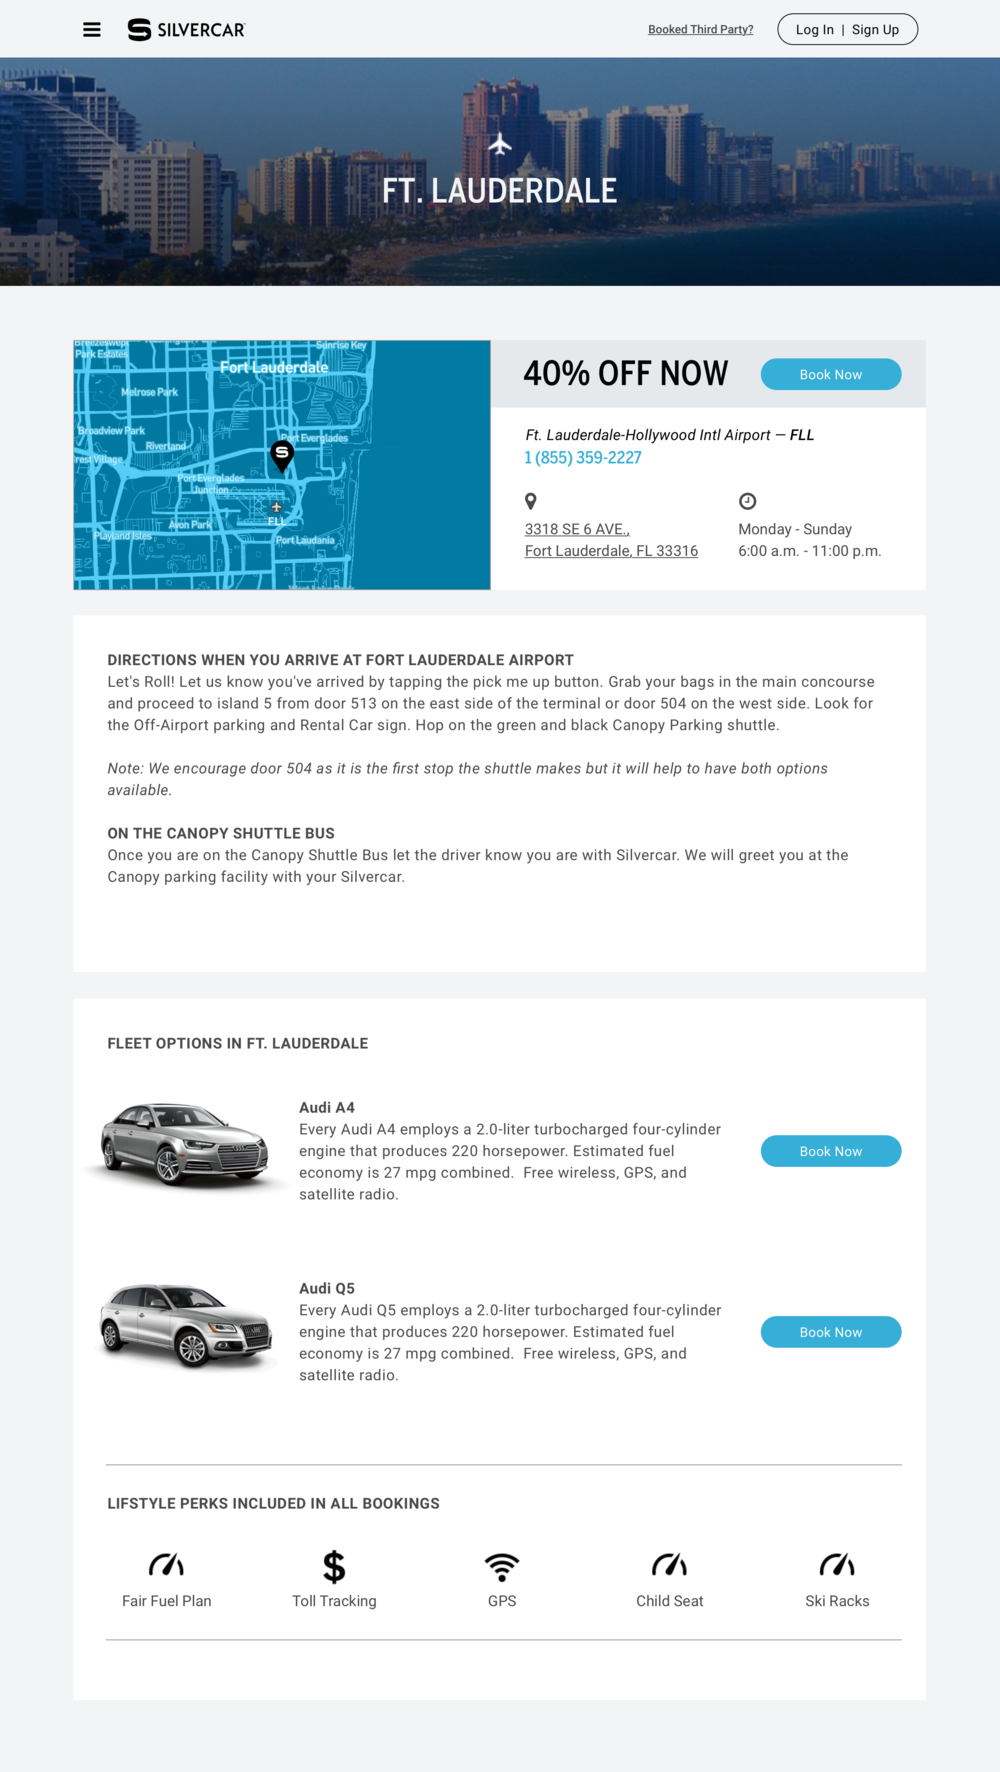 Silvercar-seondarypage-location.png